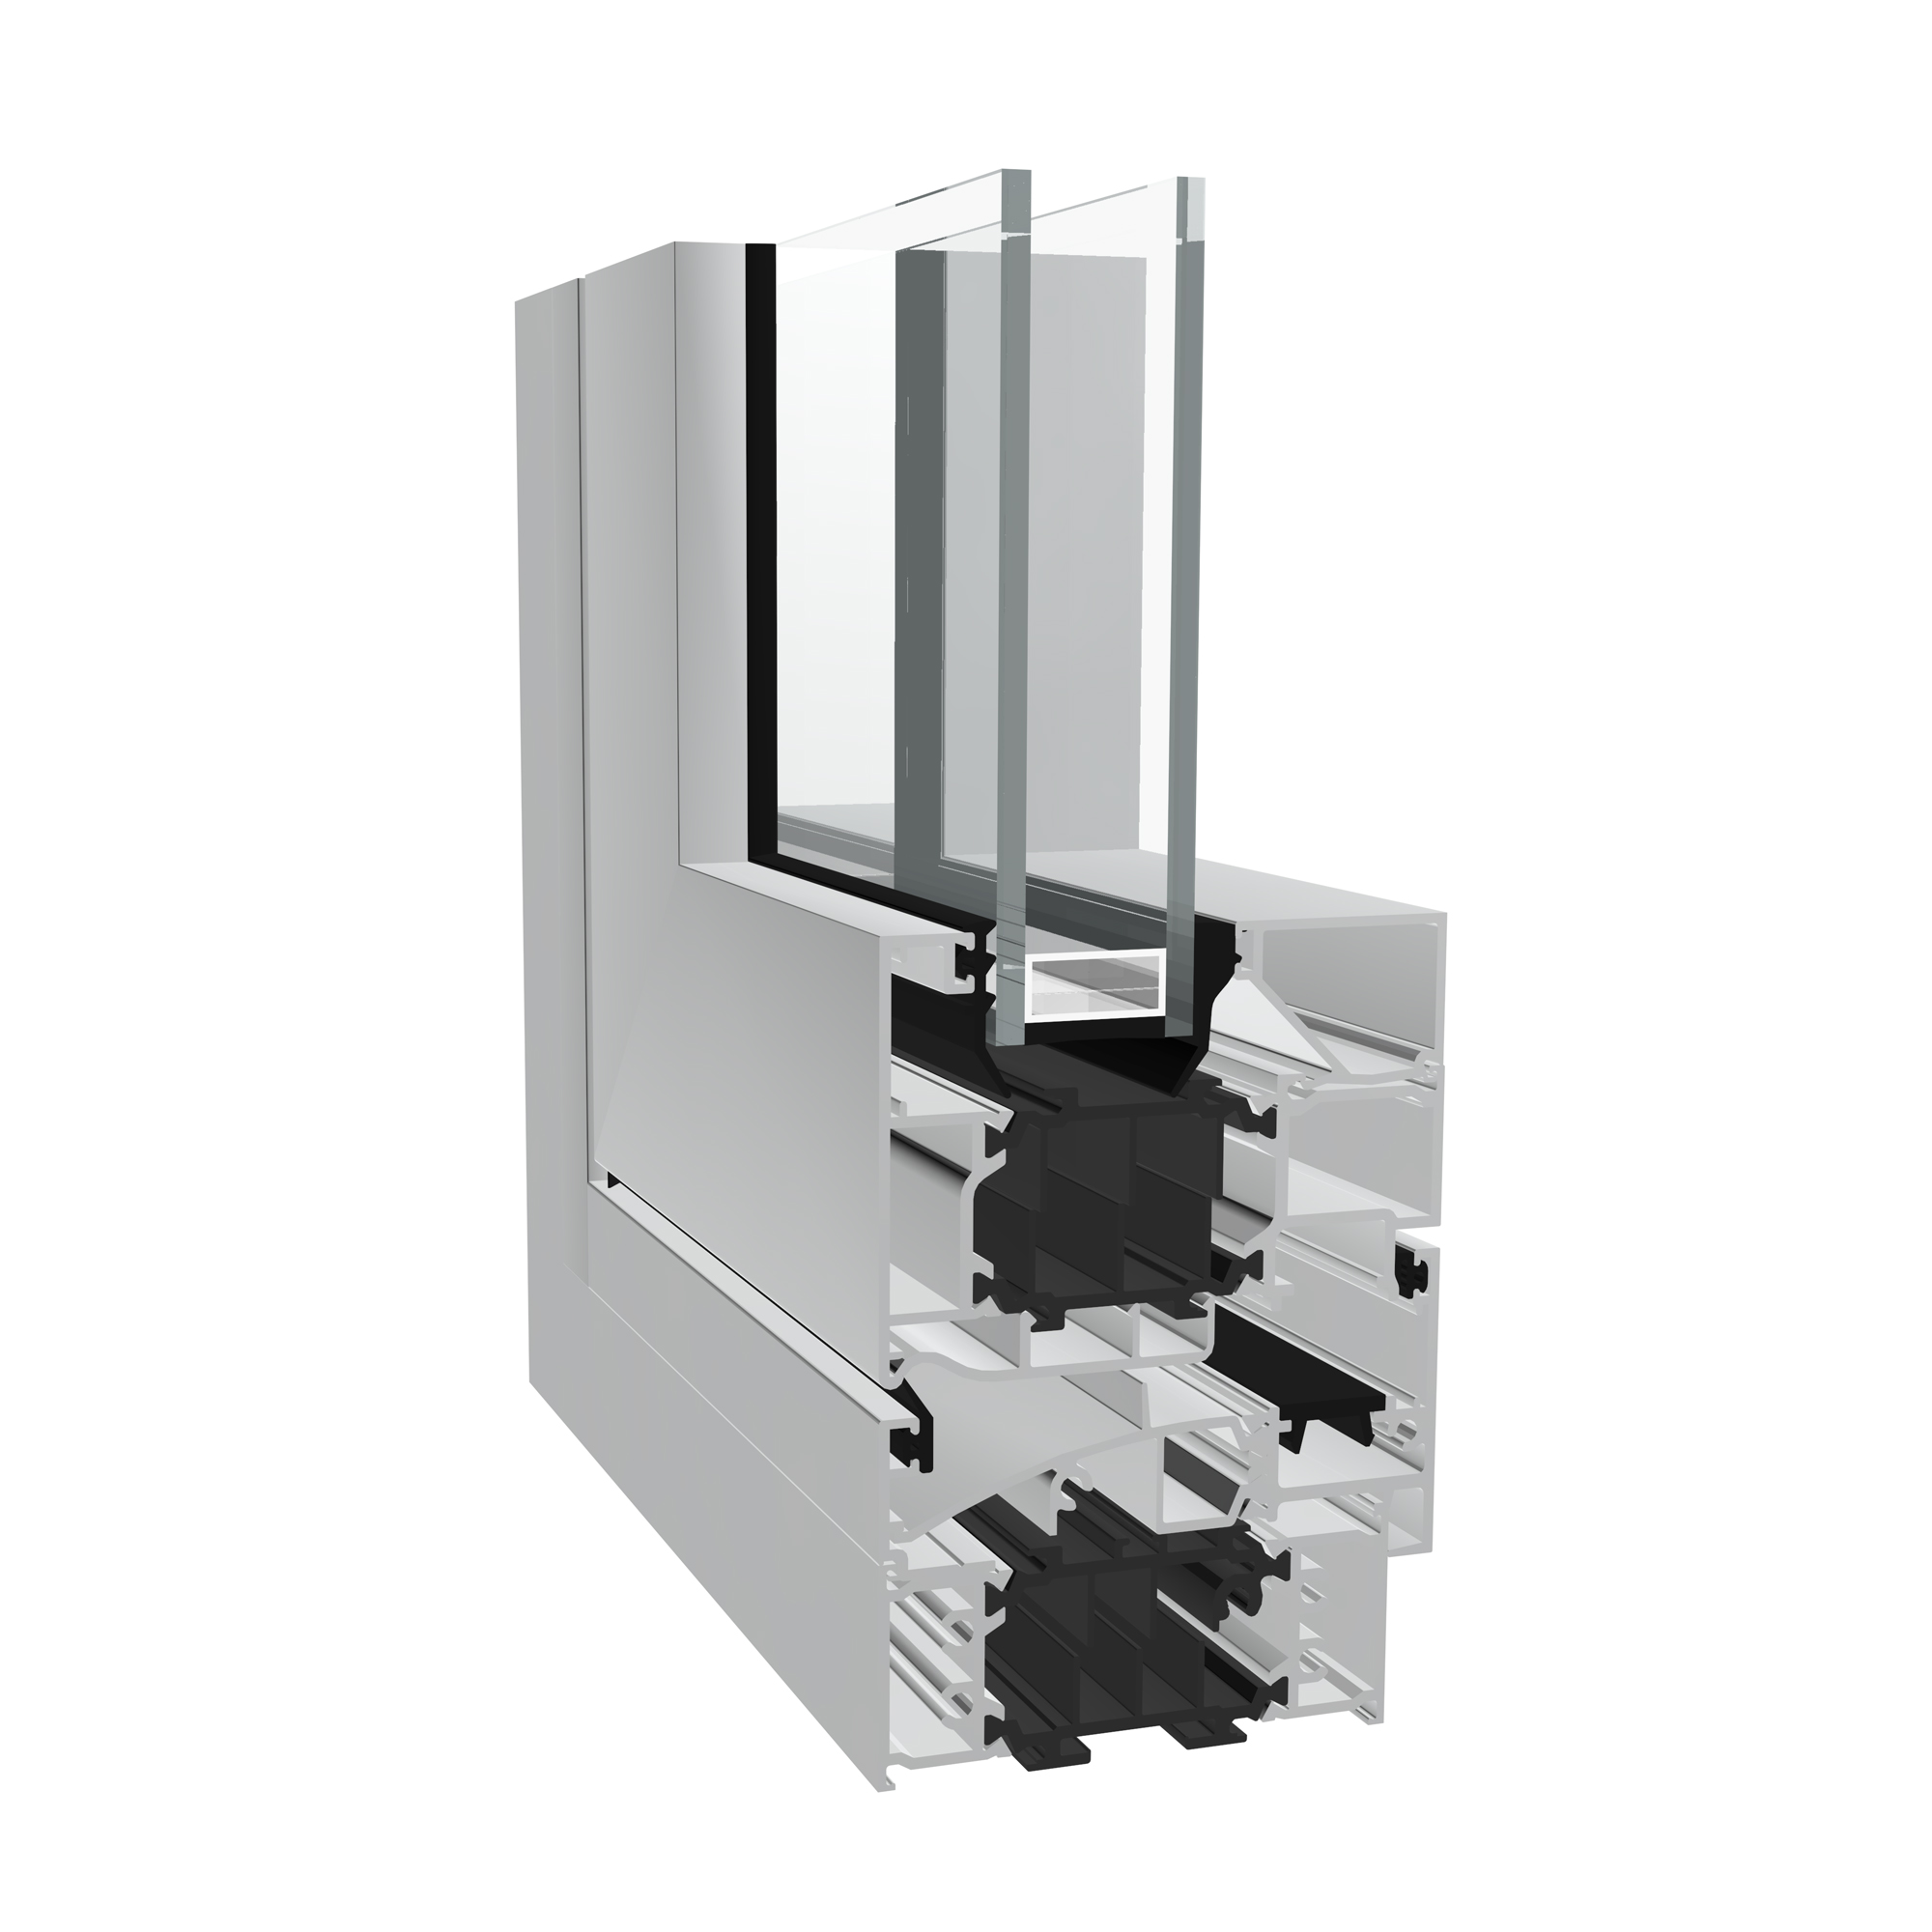 Dualframe 75 Si aluminium pivot window from Sapa